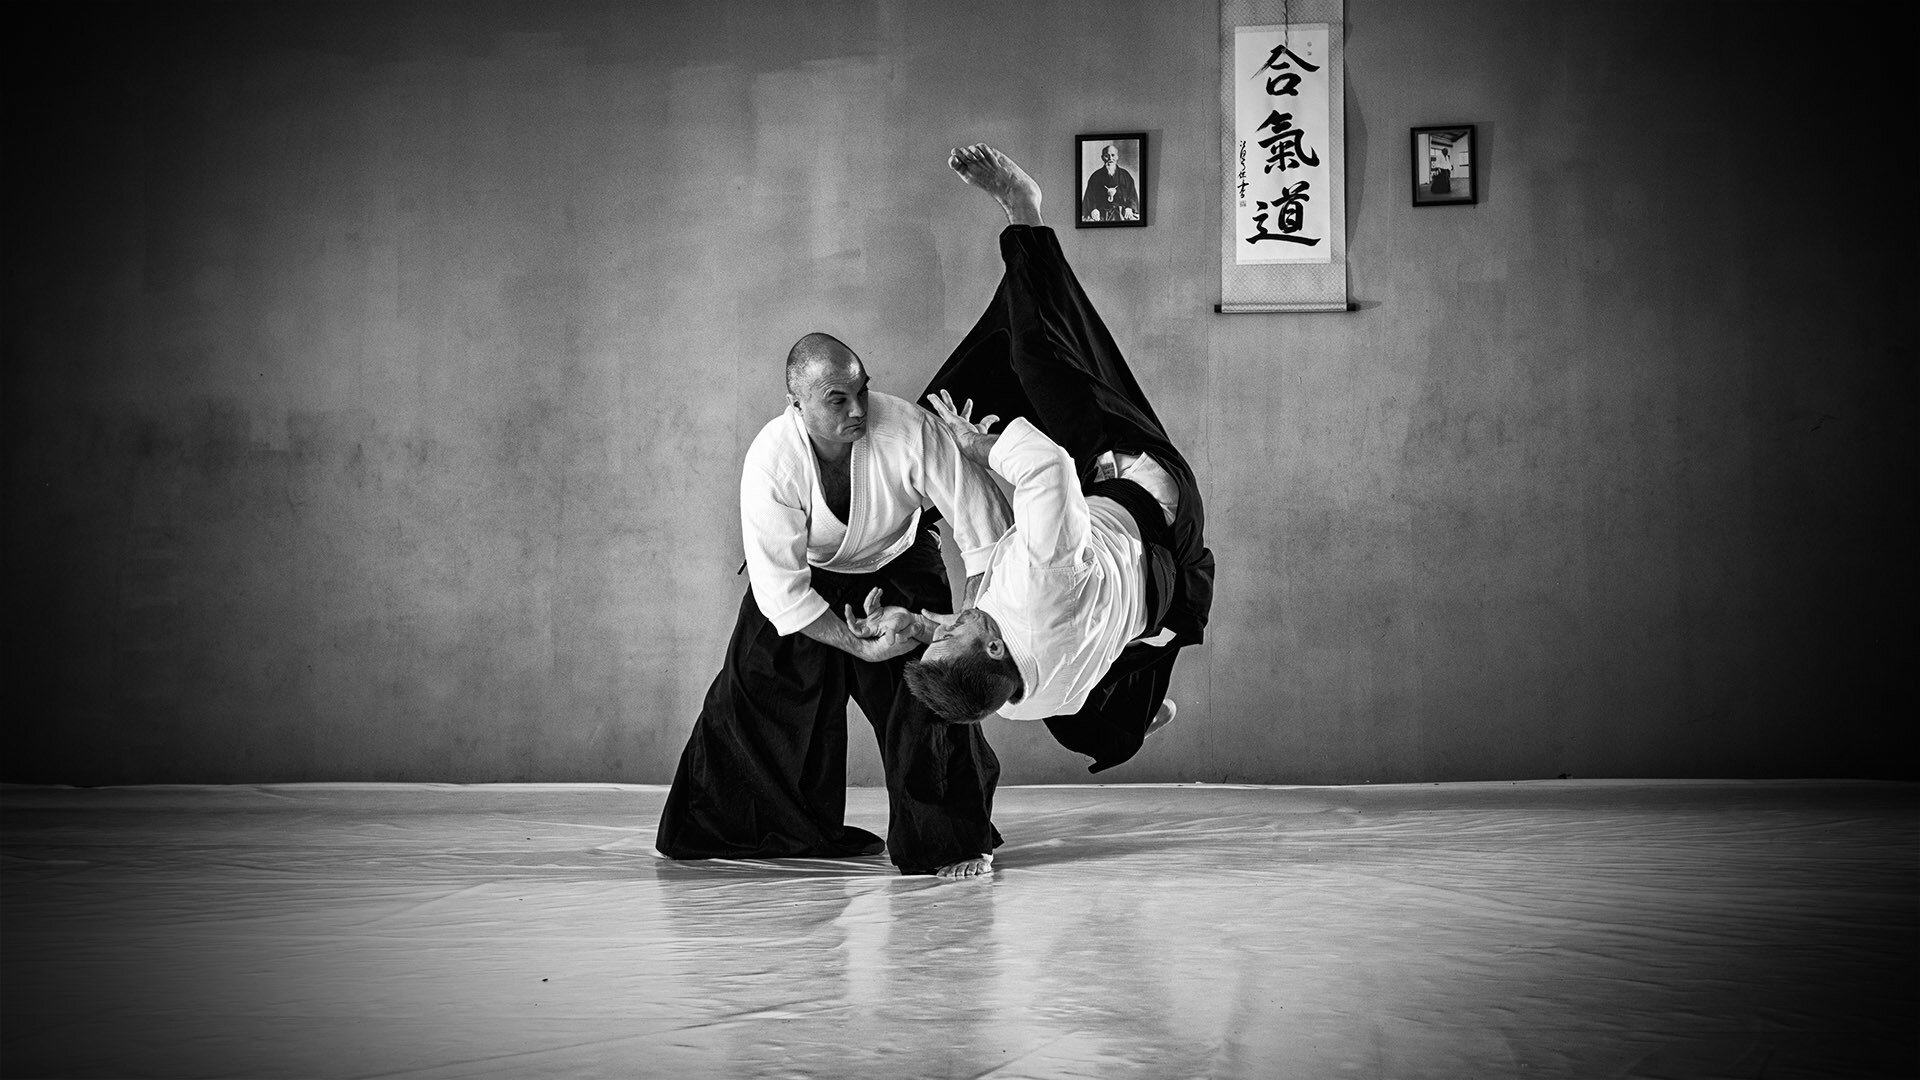 1438905-cool-aikido-pictures-wallpapers-1920x1080-hd.jpg